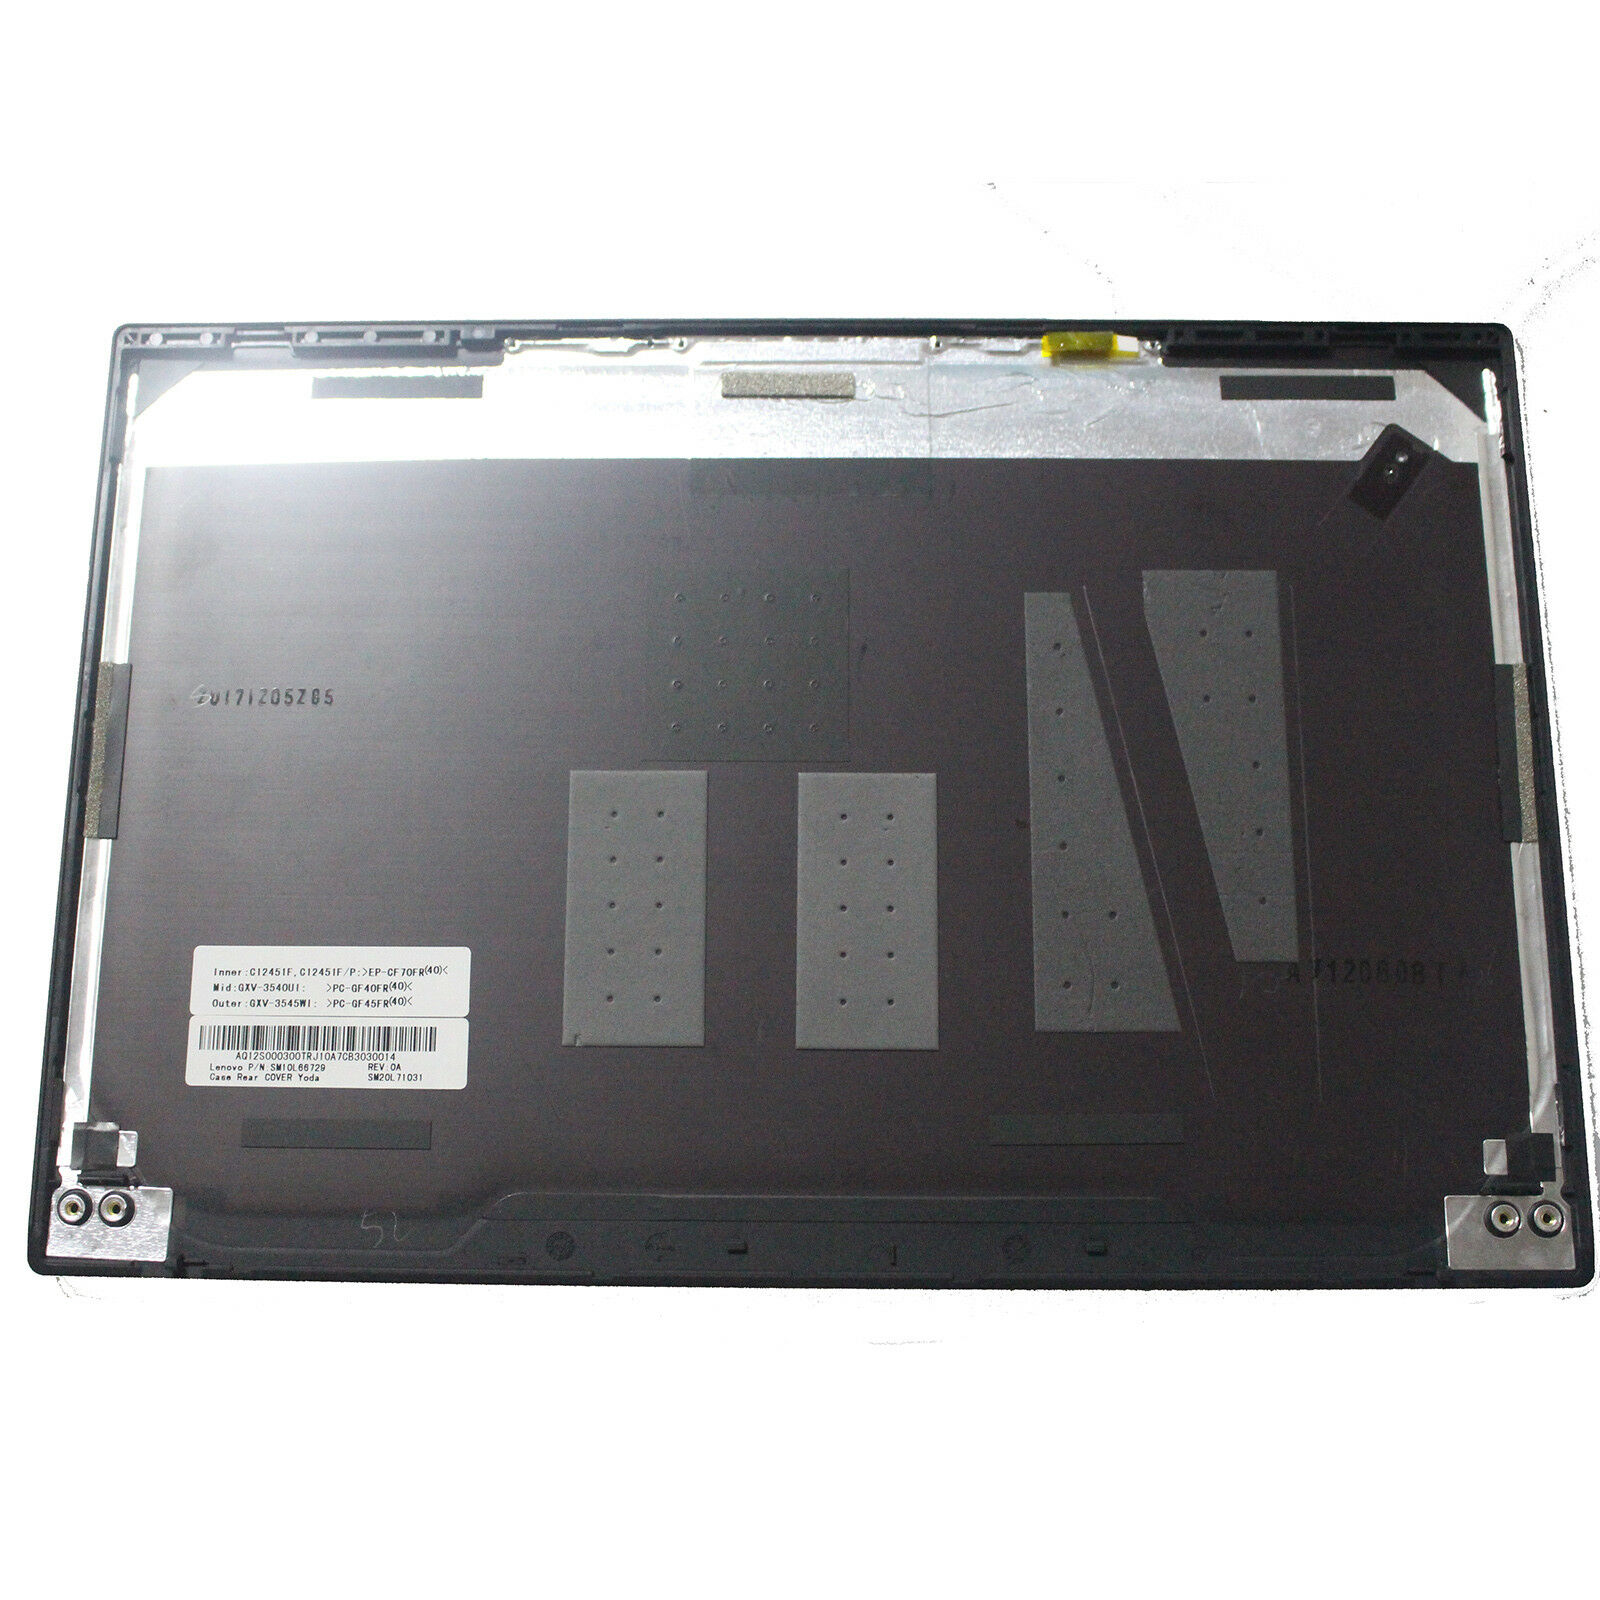 Laptop Replacement LCD Rear Top Lid Back Cover for Lenovo Thinkpad X1 Carbon 5th 20HR 20HQ Top Lid Plastic LCD 01LV476